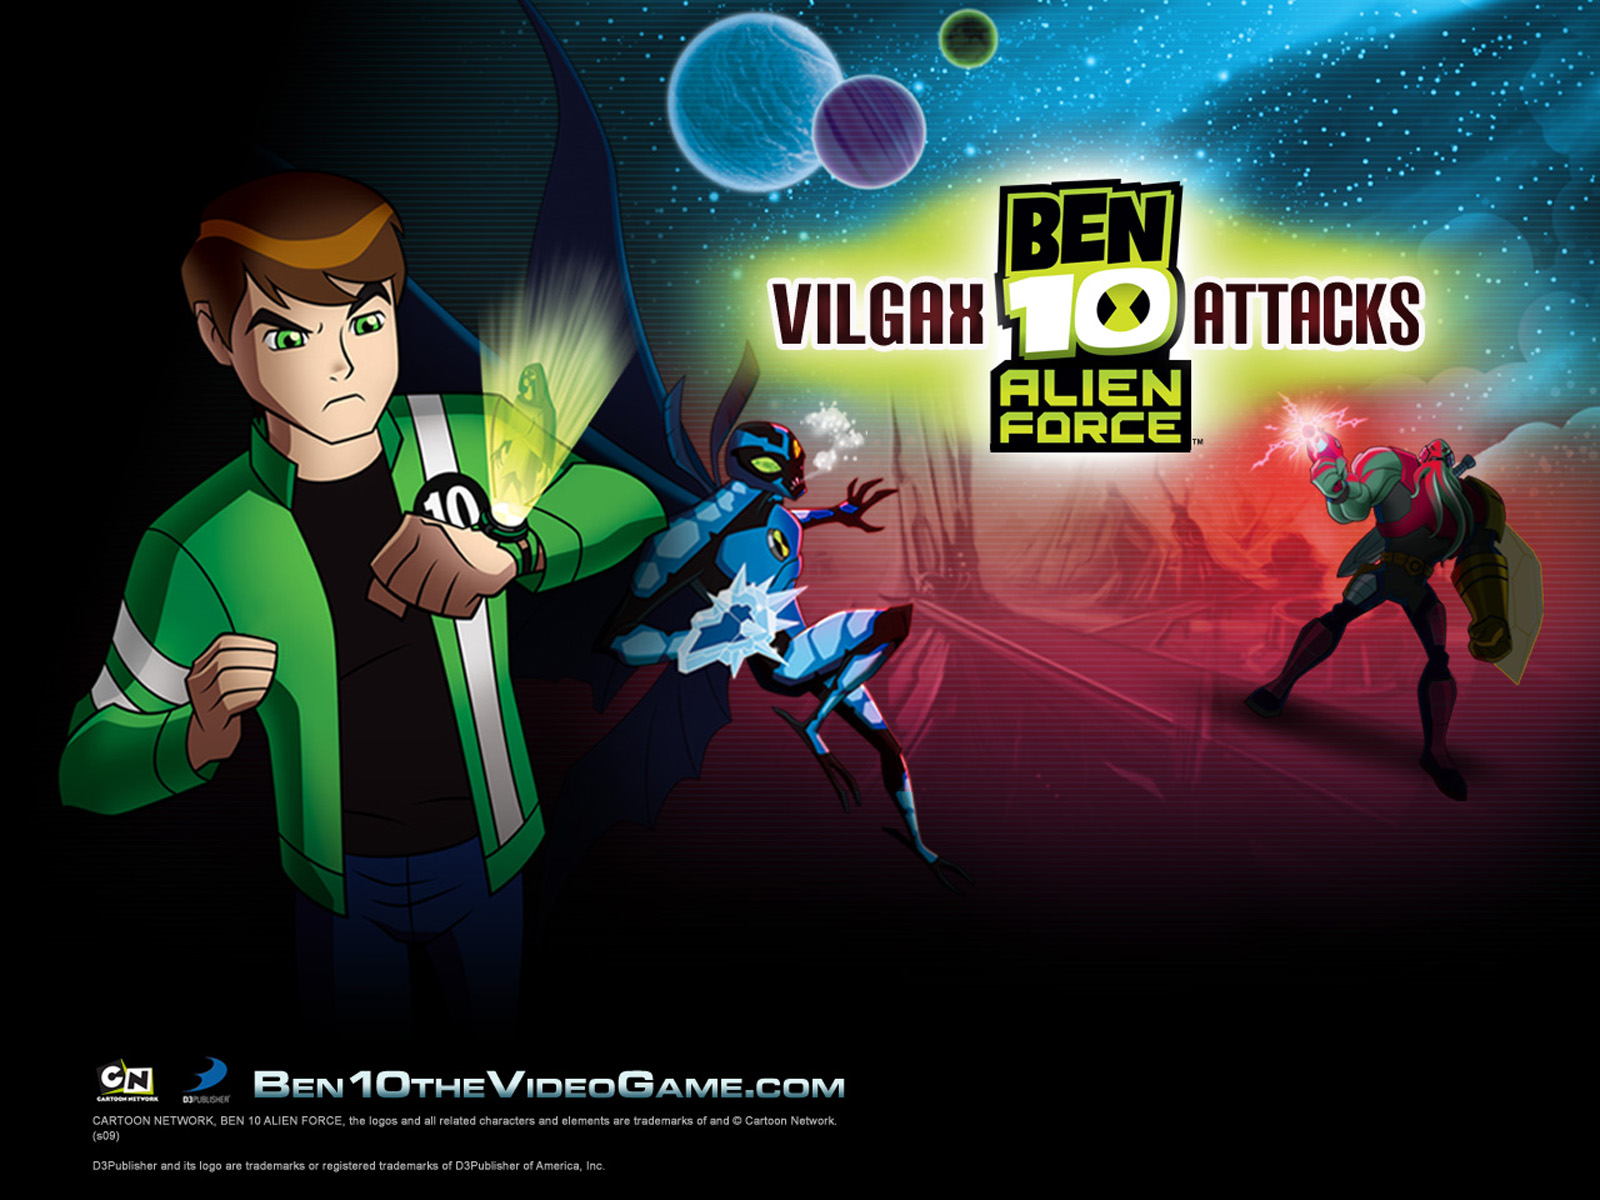 Ben 10 Vilgax Attack Capitulos Completos | Ben 10 Alien Force Vilgax Attack (Cartoon Network)